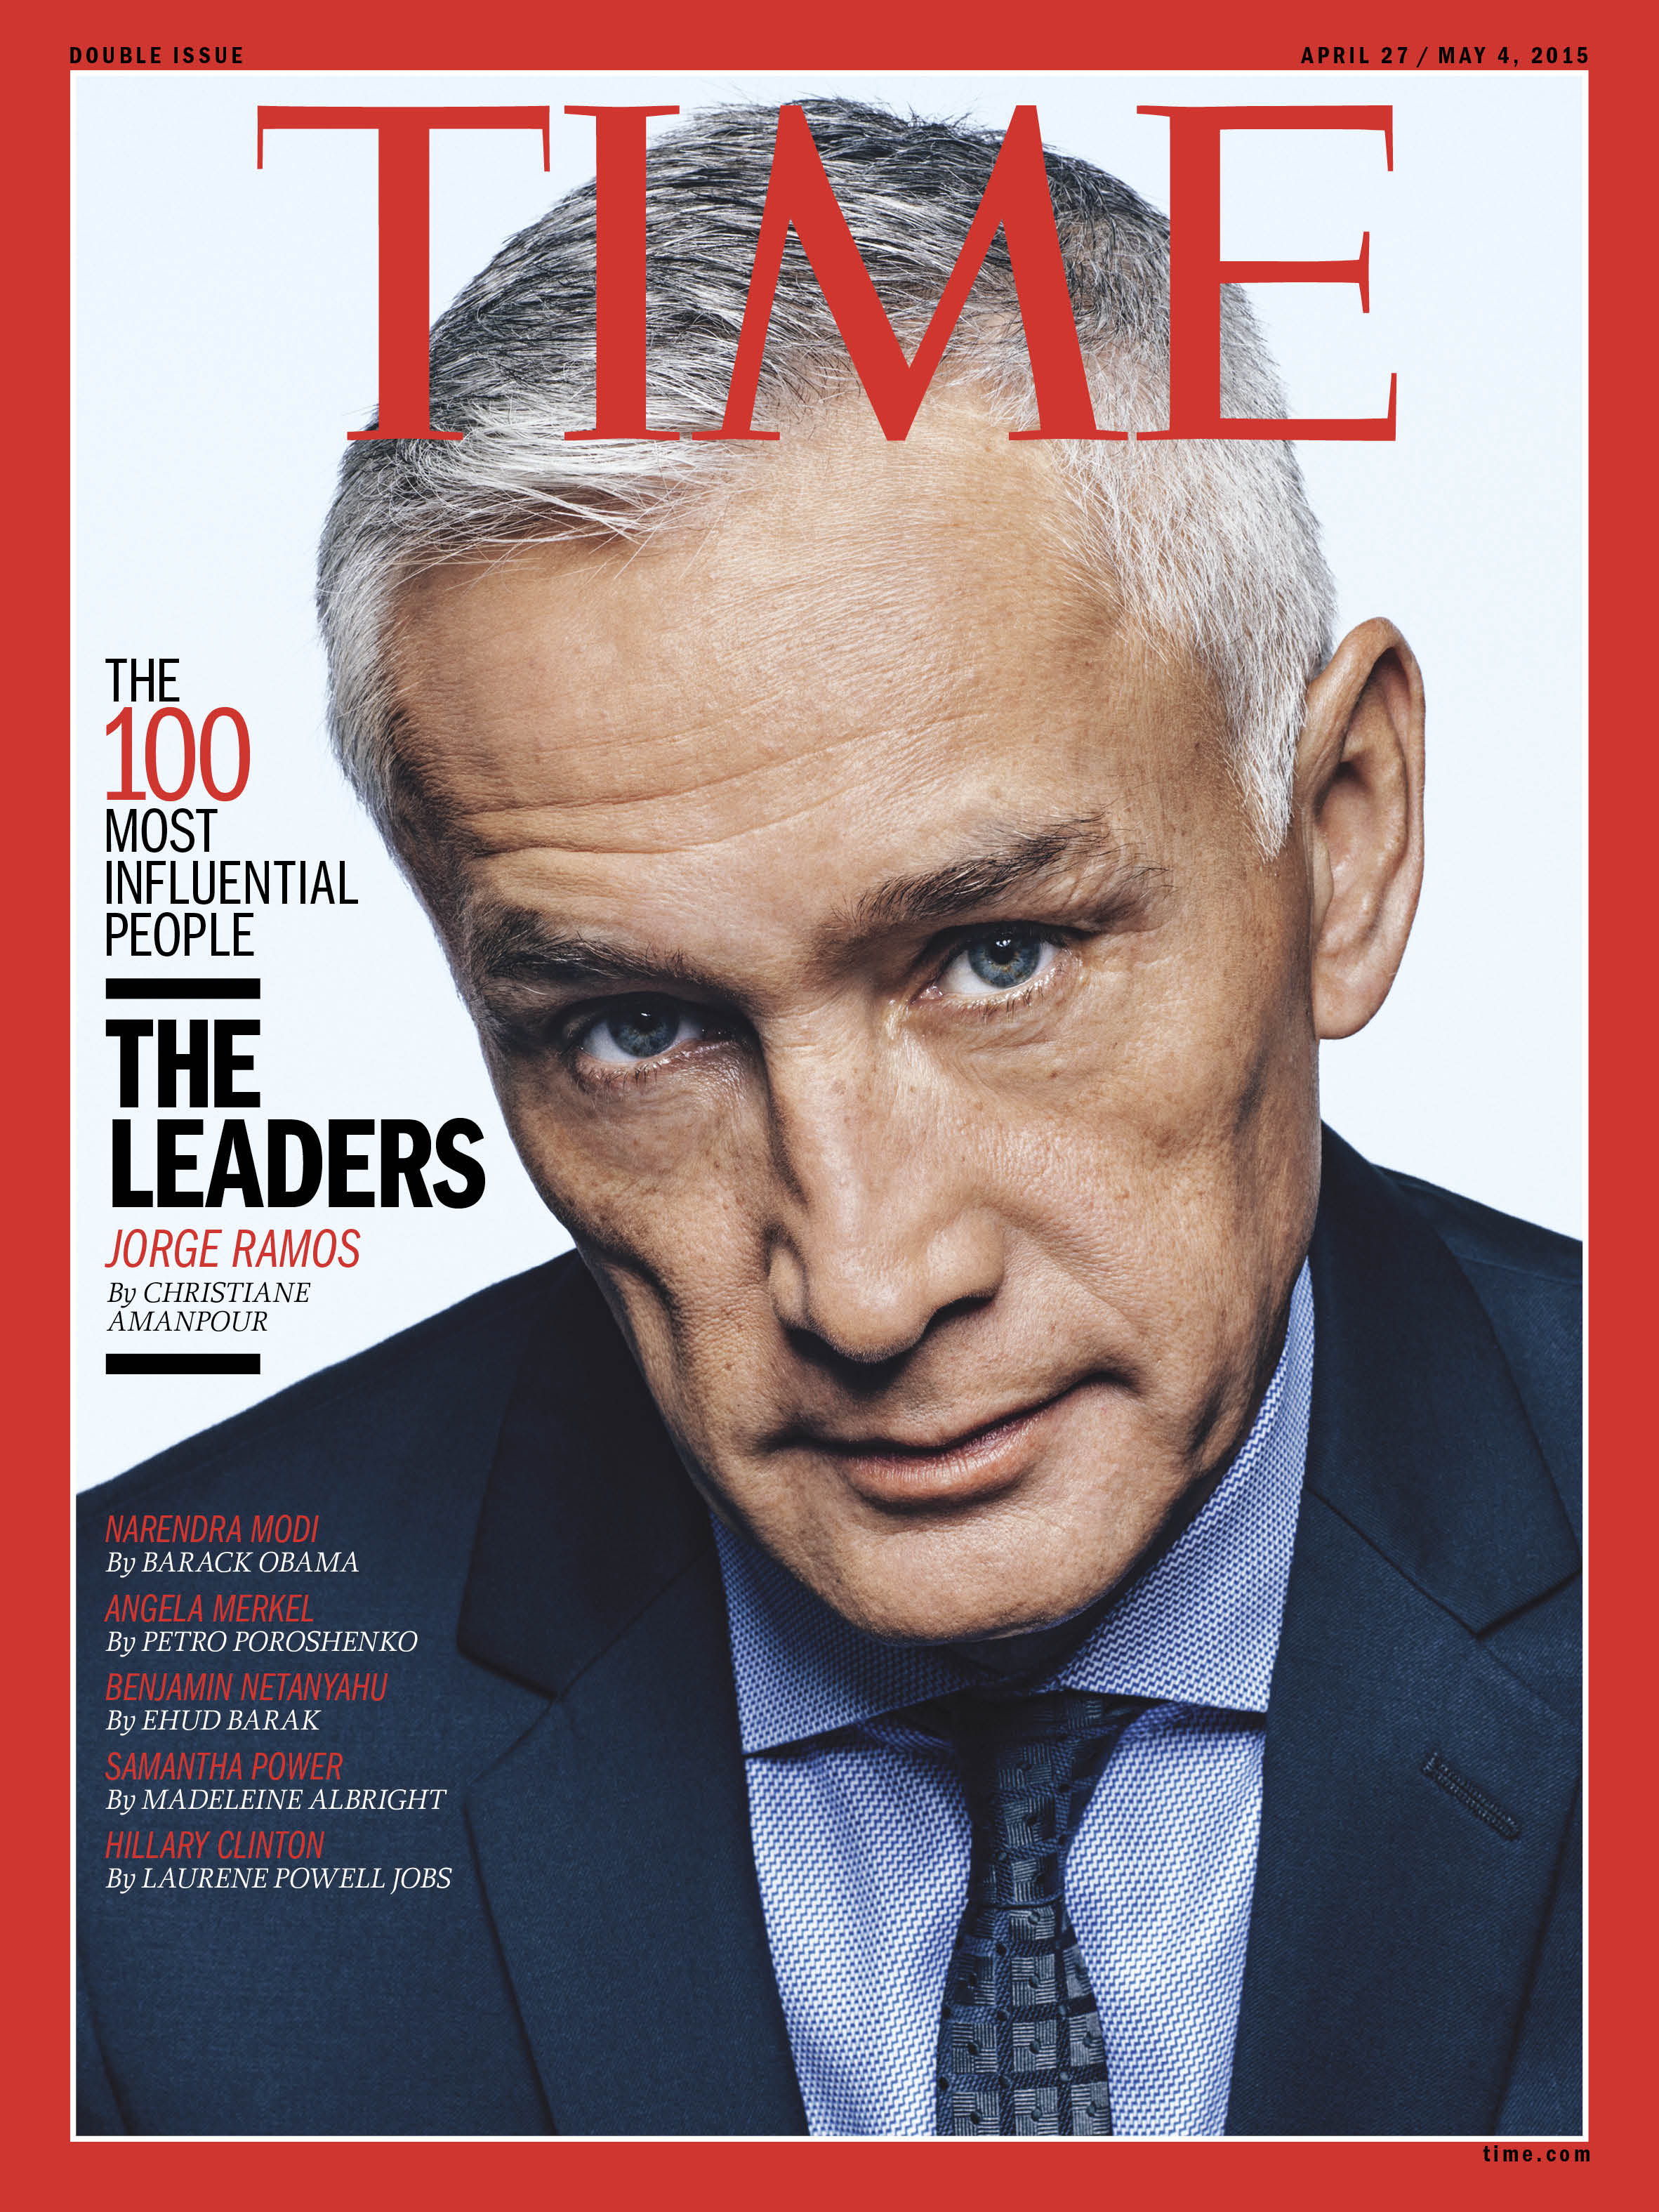 Christiane Amanpour on Jorge Ramos:   He knows he has a voice and is not afraid to use it. He shouts from every rooftop that Hispanic rights are human rights.